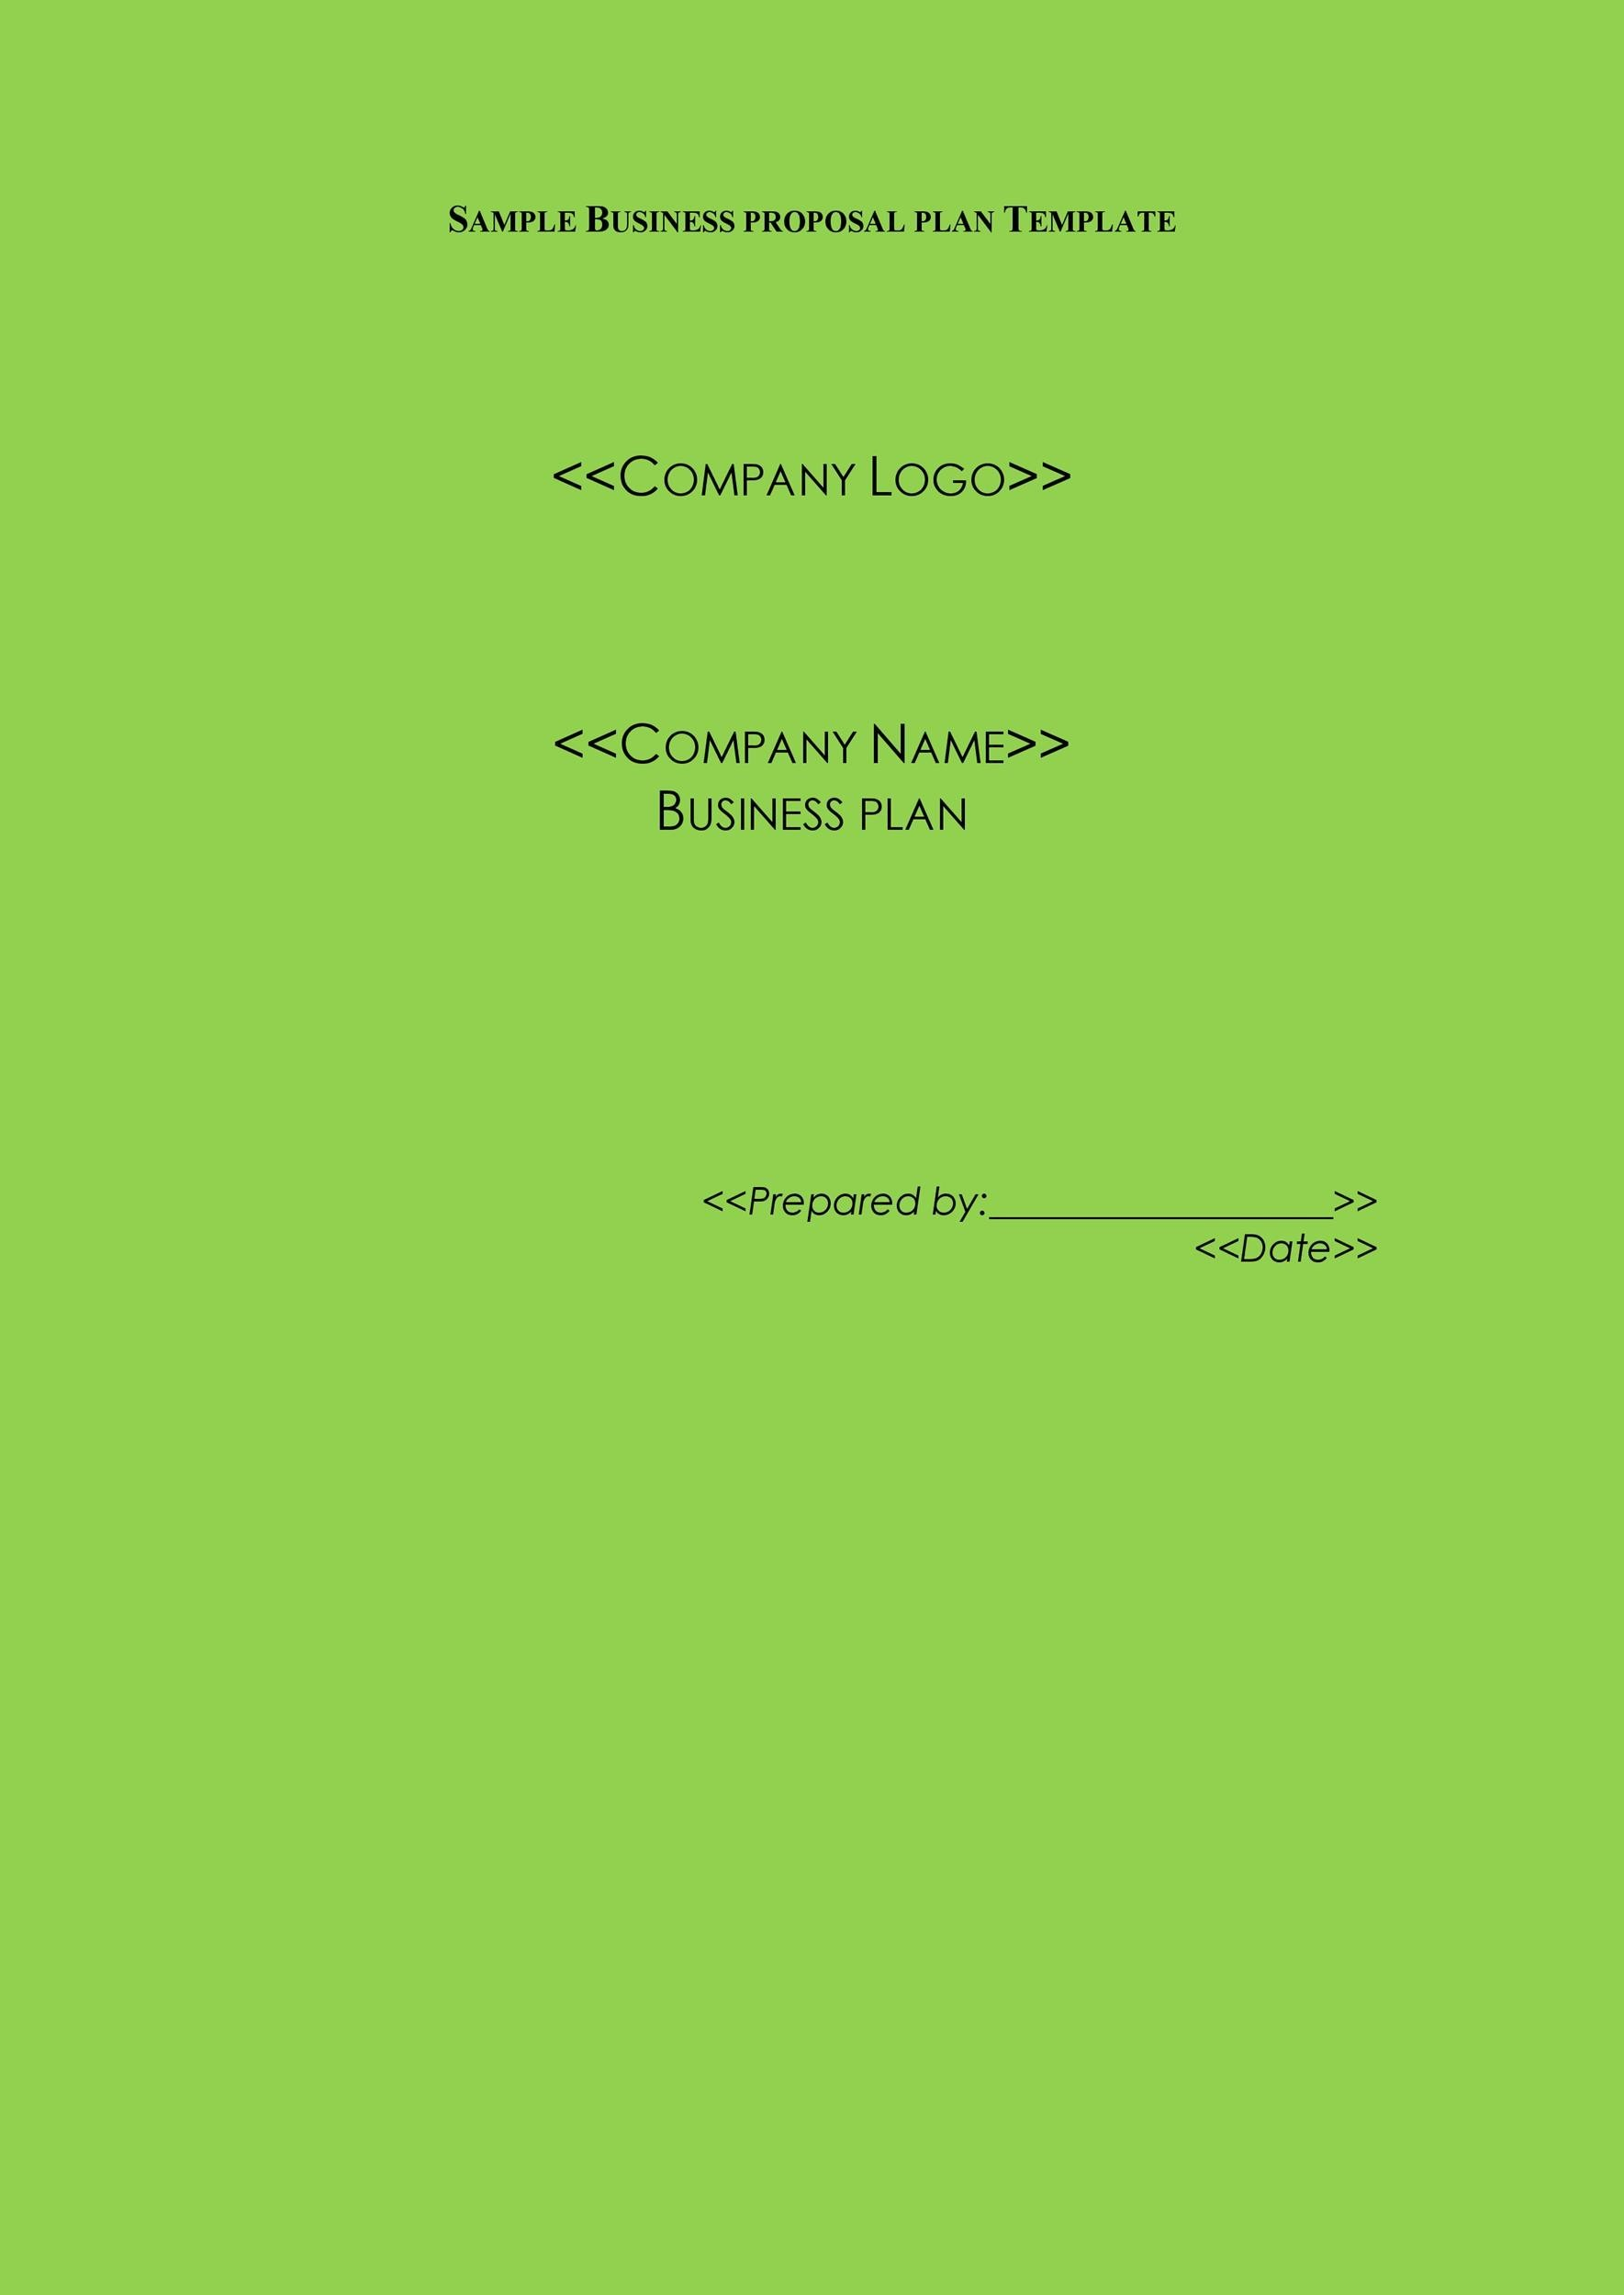 Free Business Proposal Template  25